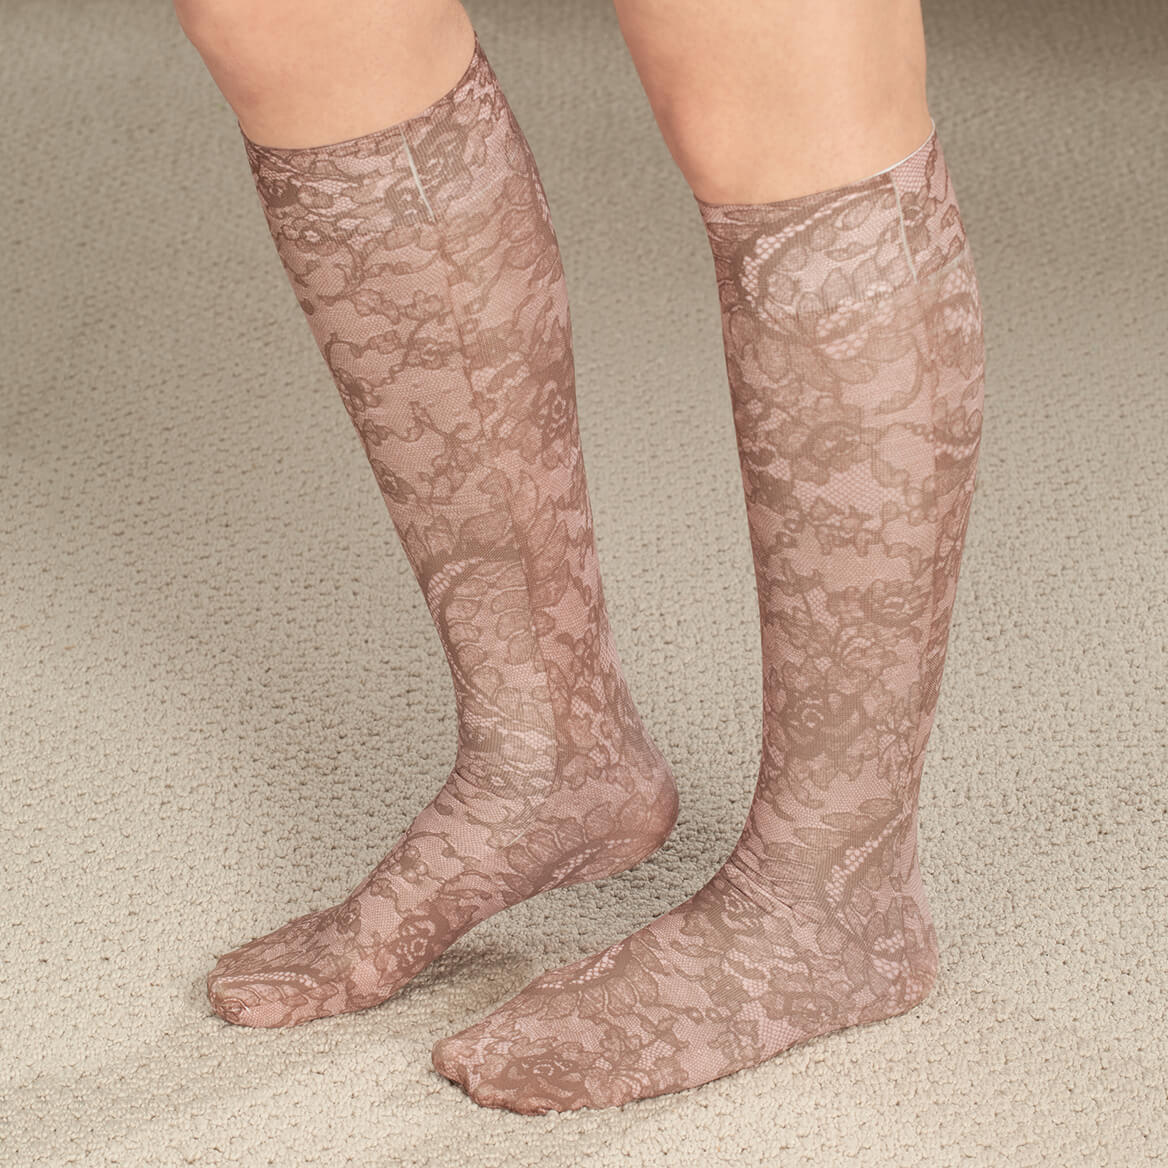 Celeste Stein Compression Socks 20-30mmHg-365483